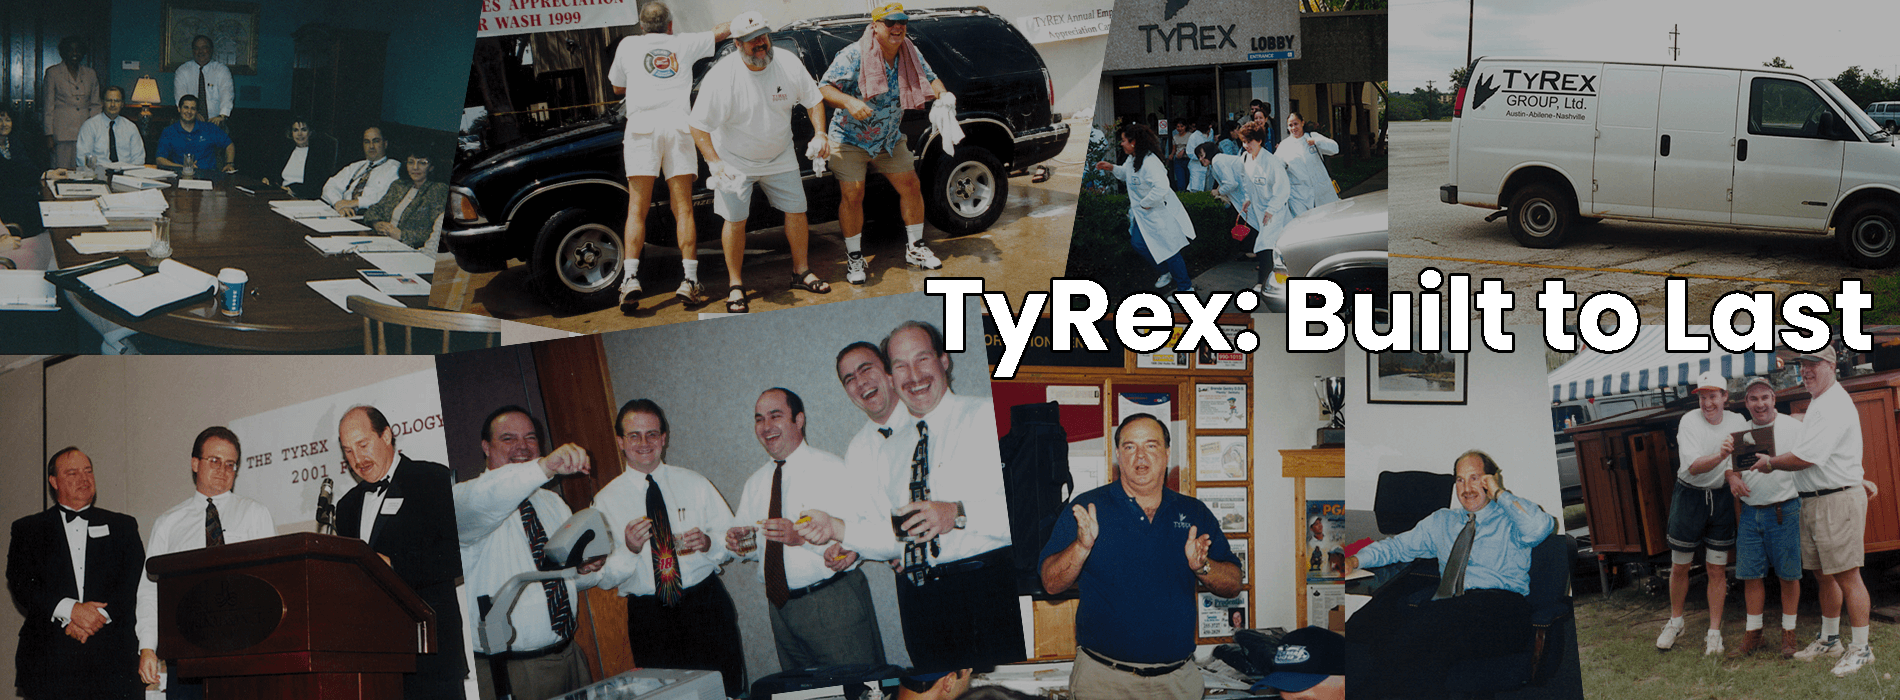 Tyrex Technology Family: A Texas Company Built to Last